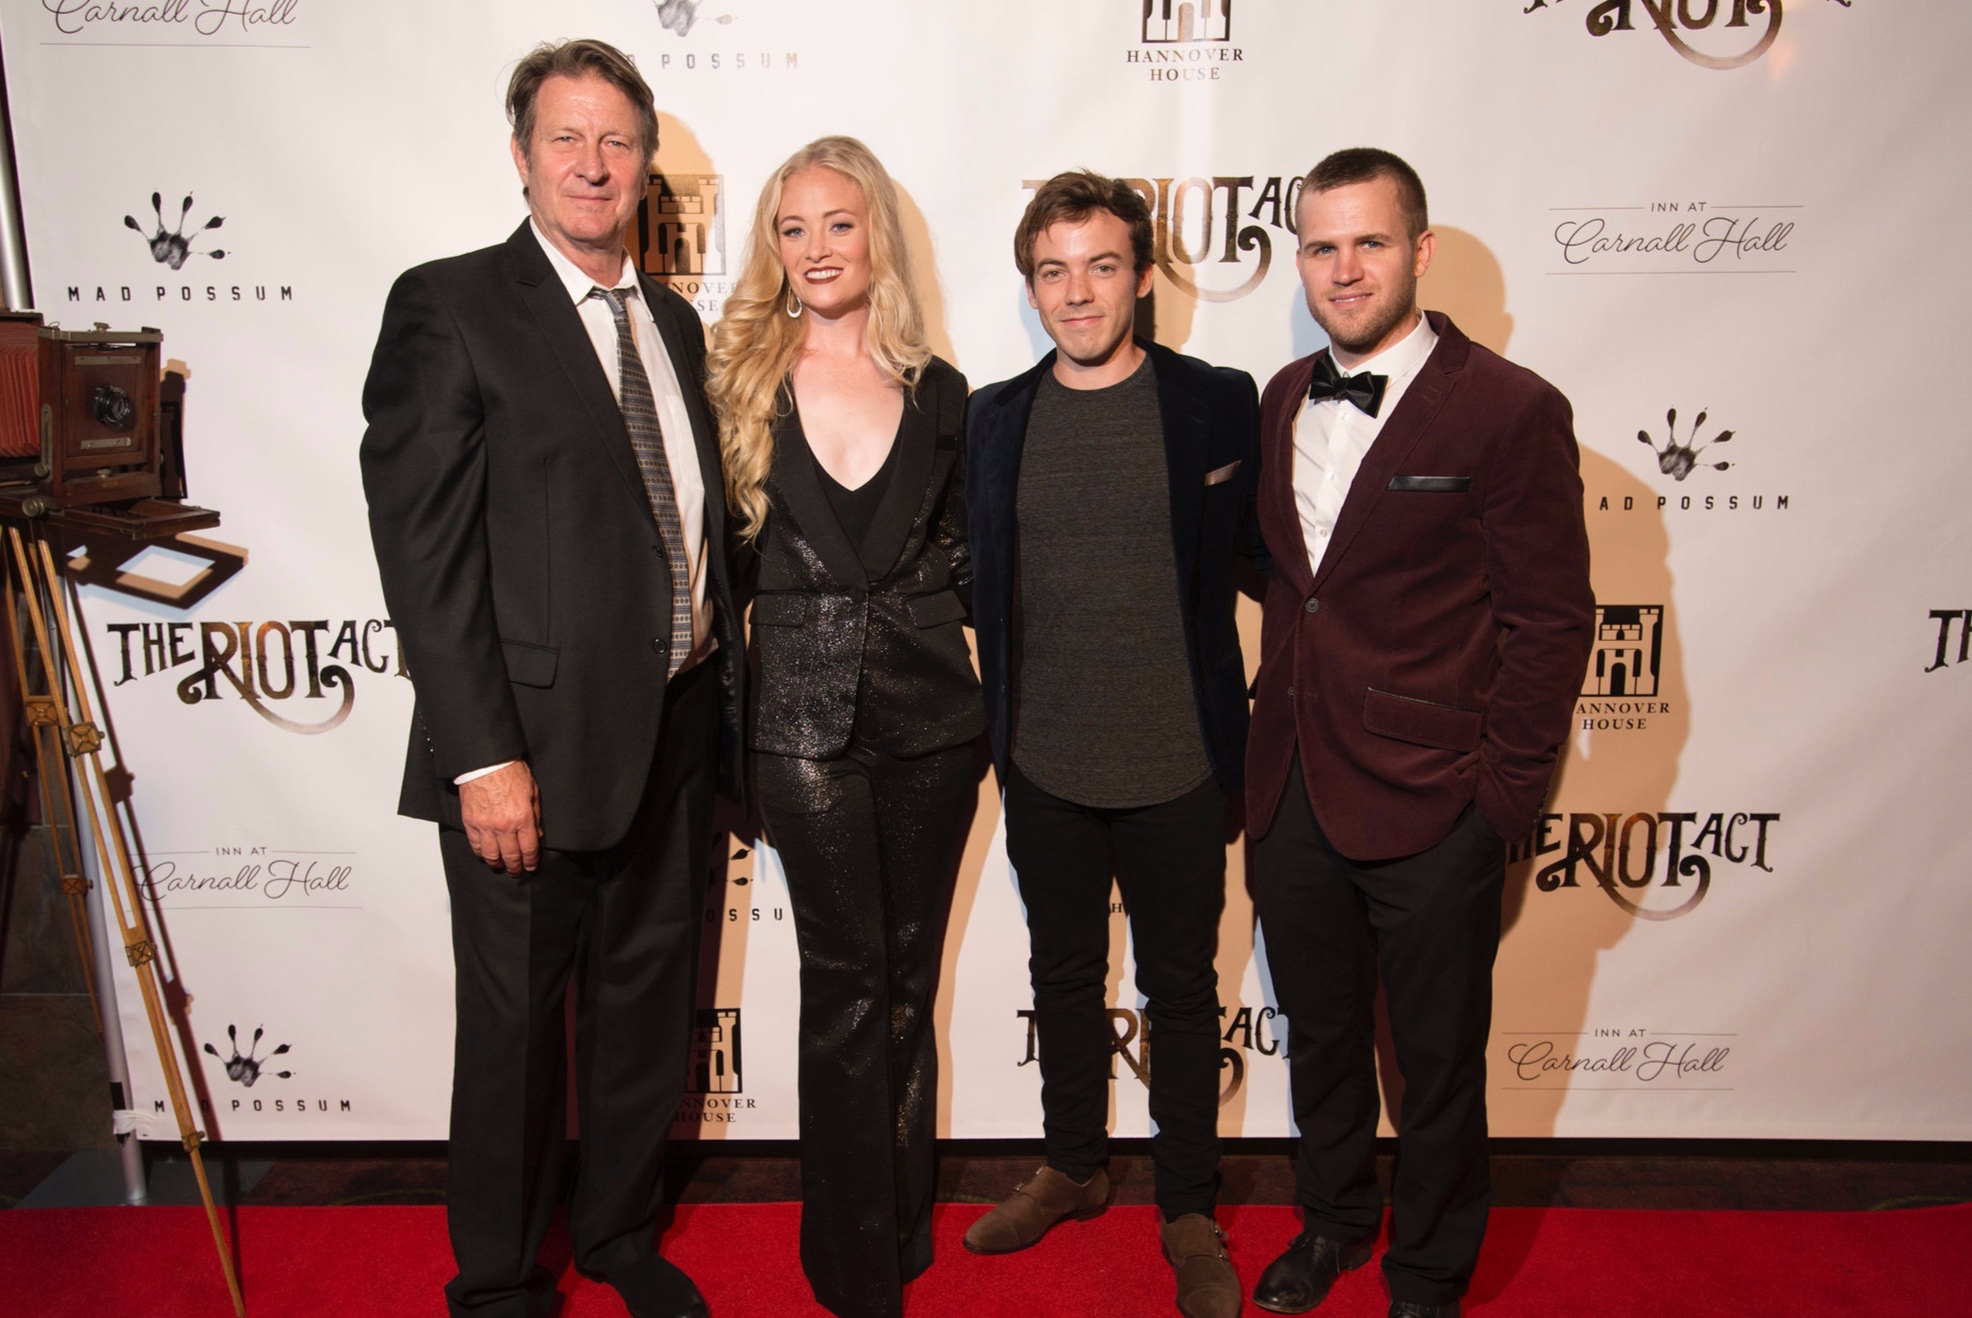 Brett Cullen, Lauren Sweetser, Connor Price, and Devon Parks at the red carpet premiere of The Riot Act.